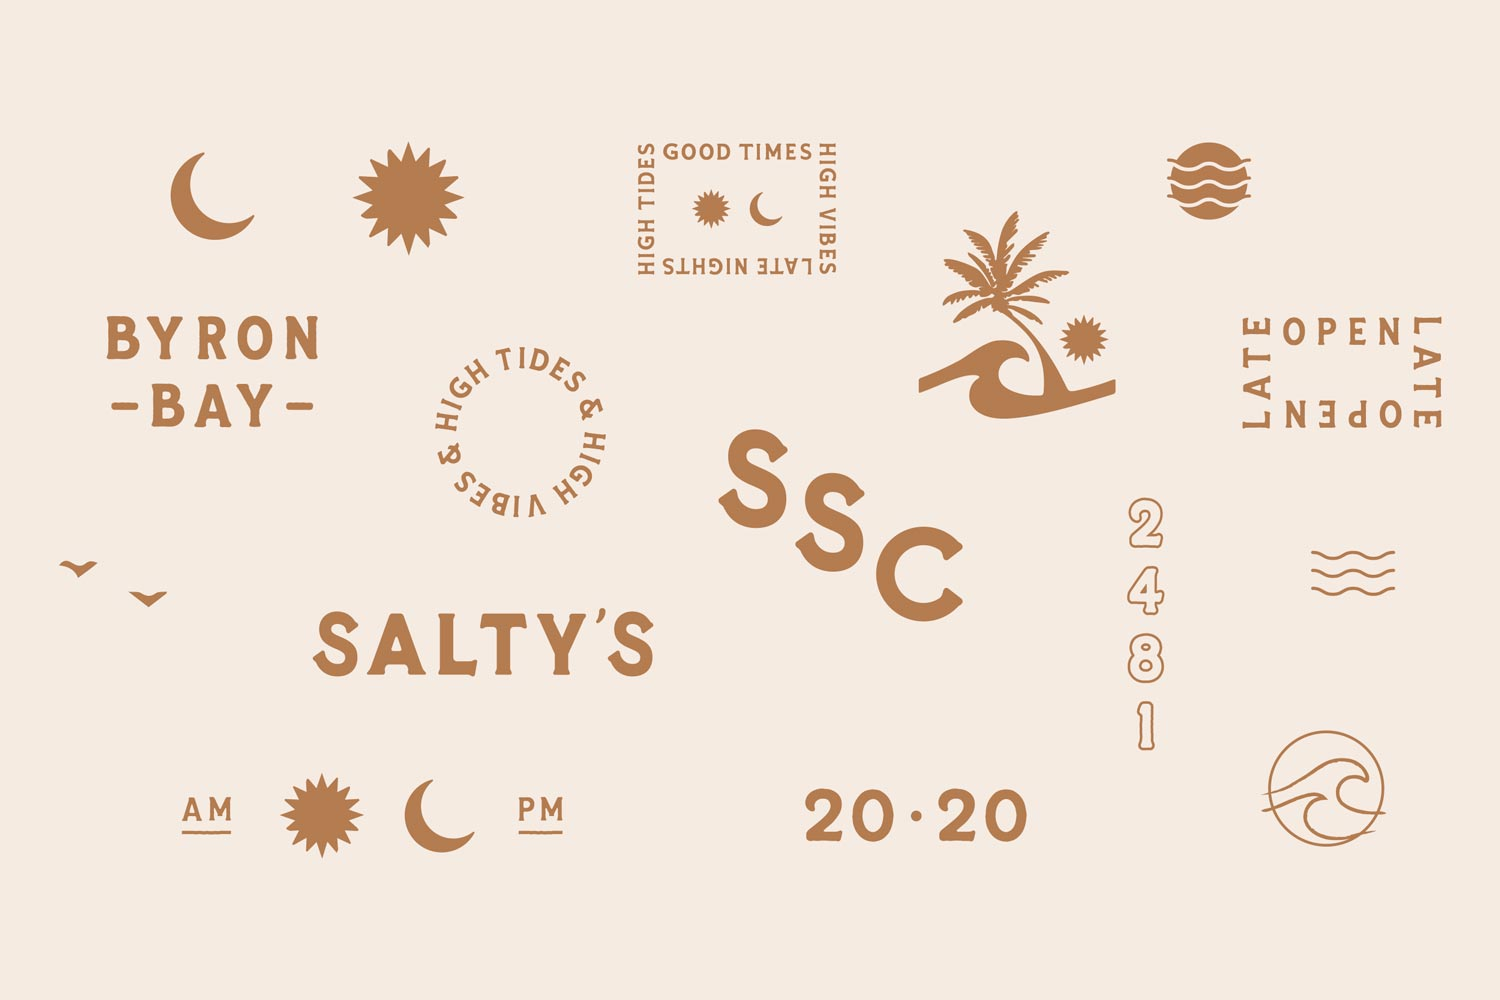 A suite of graphic elements designed as part of Saltwater Social Club's greater visual identity